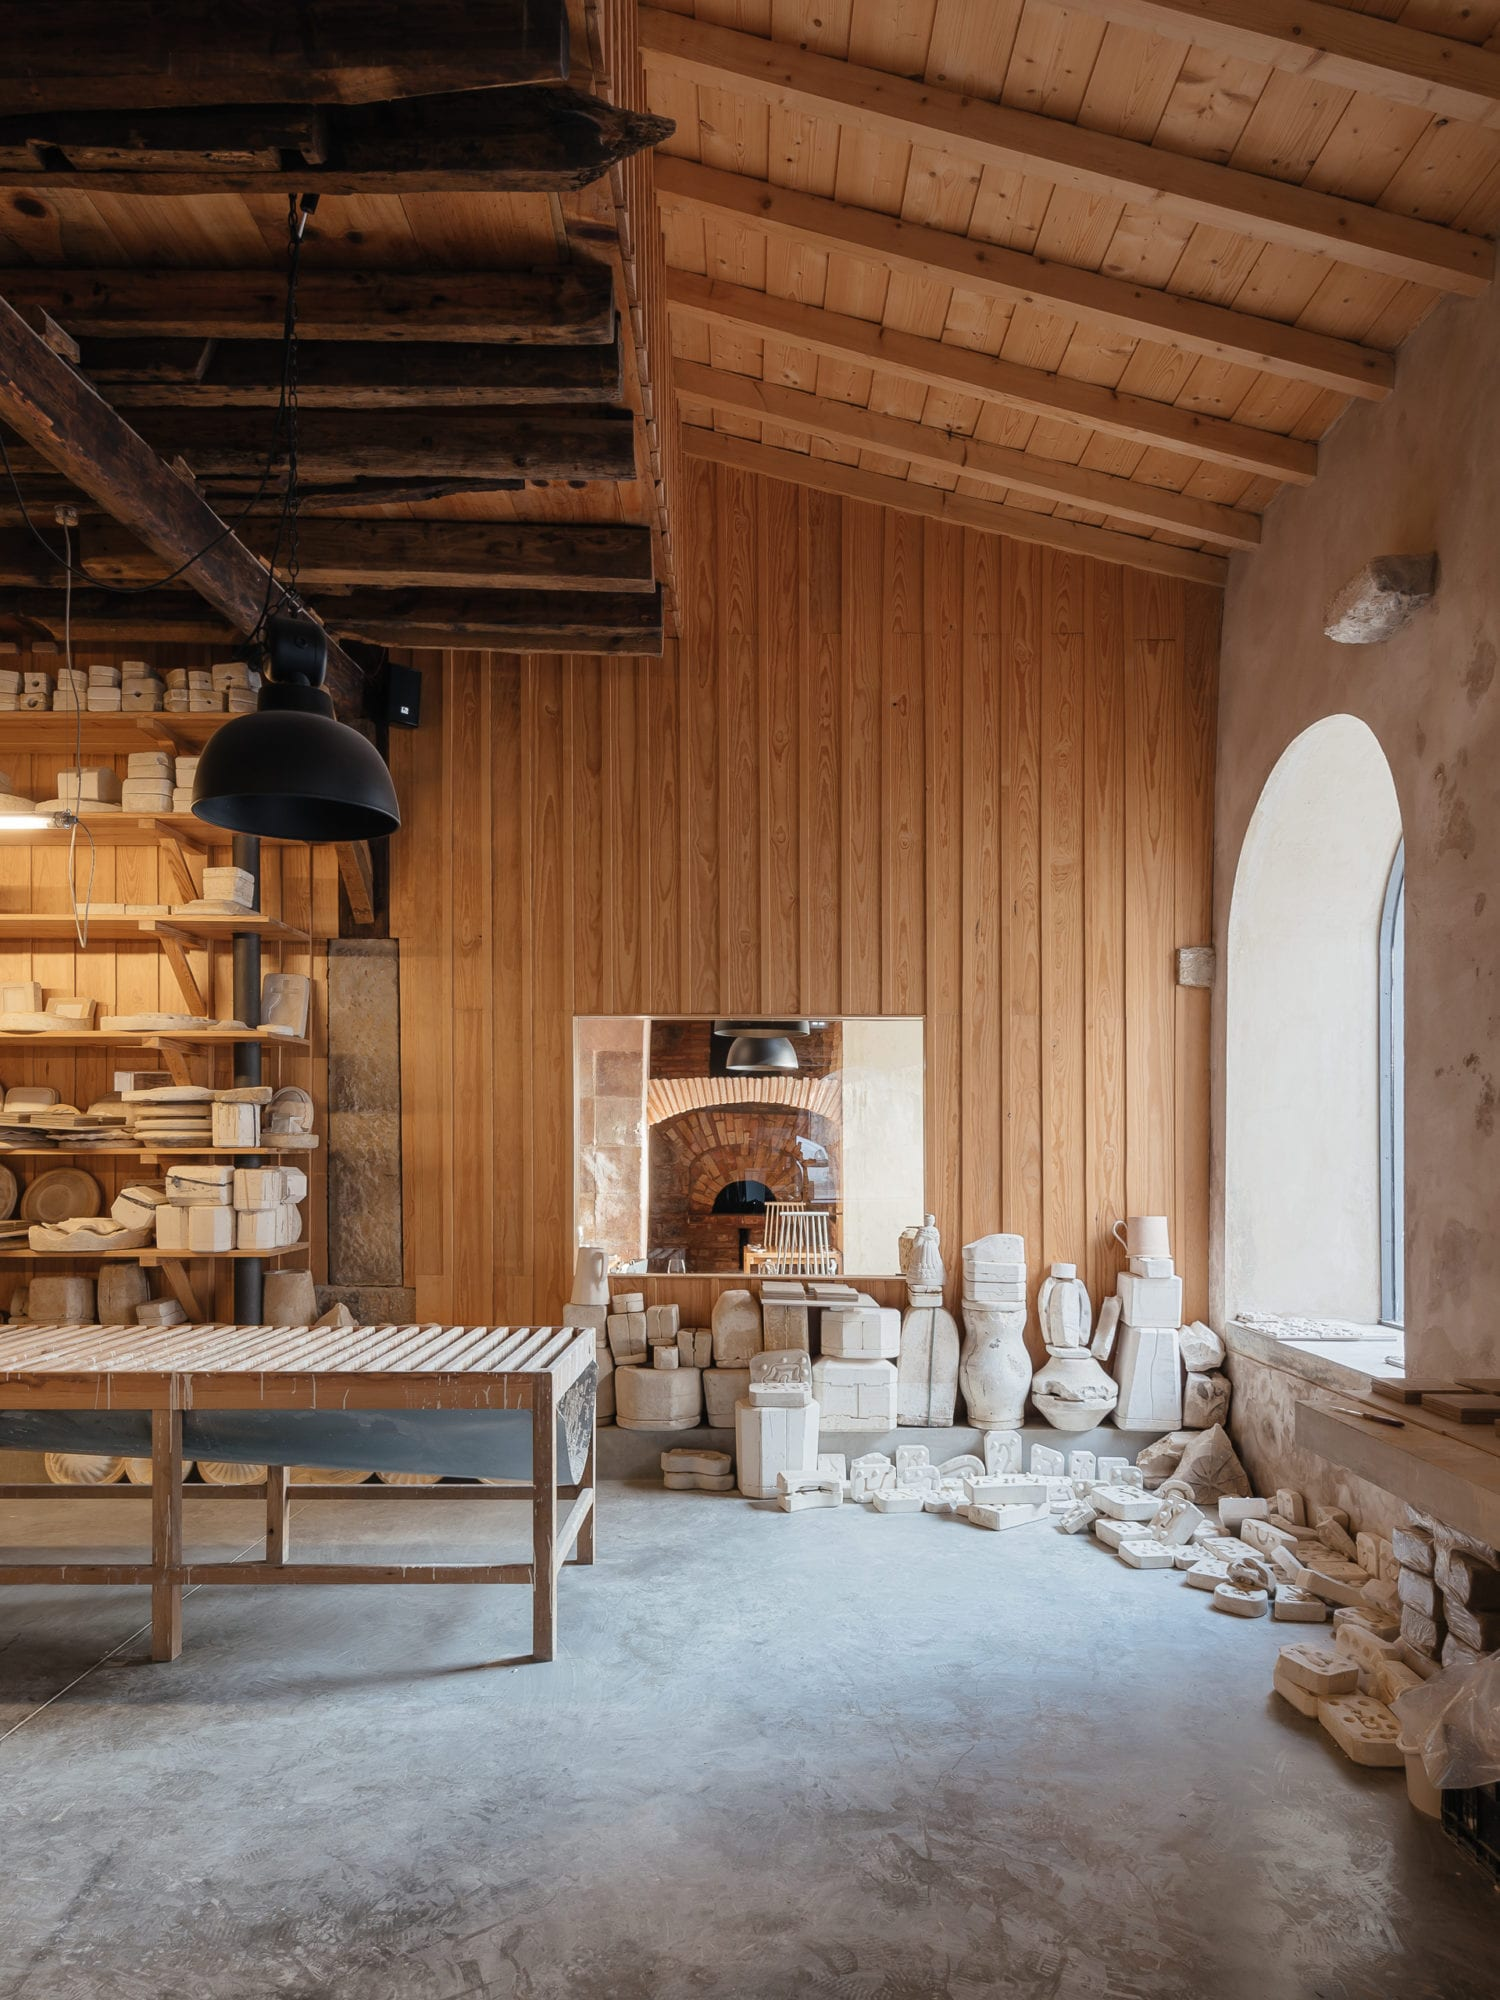 Luisa Bebiano And Atelier Do Corvo Renovation Old Ceramic Society Of Coimbra 18th Century Building | Yellowtrace